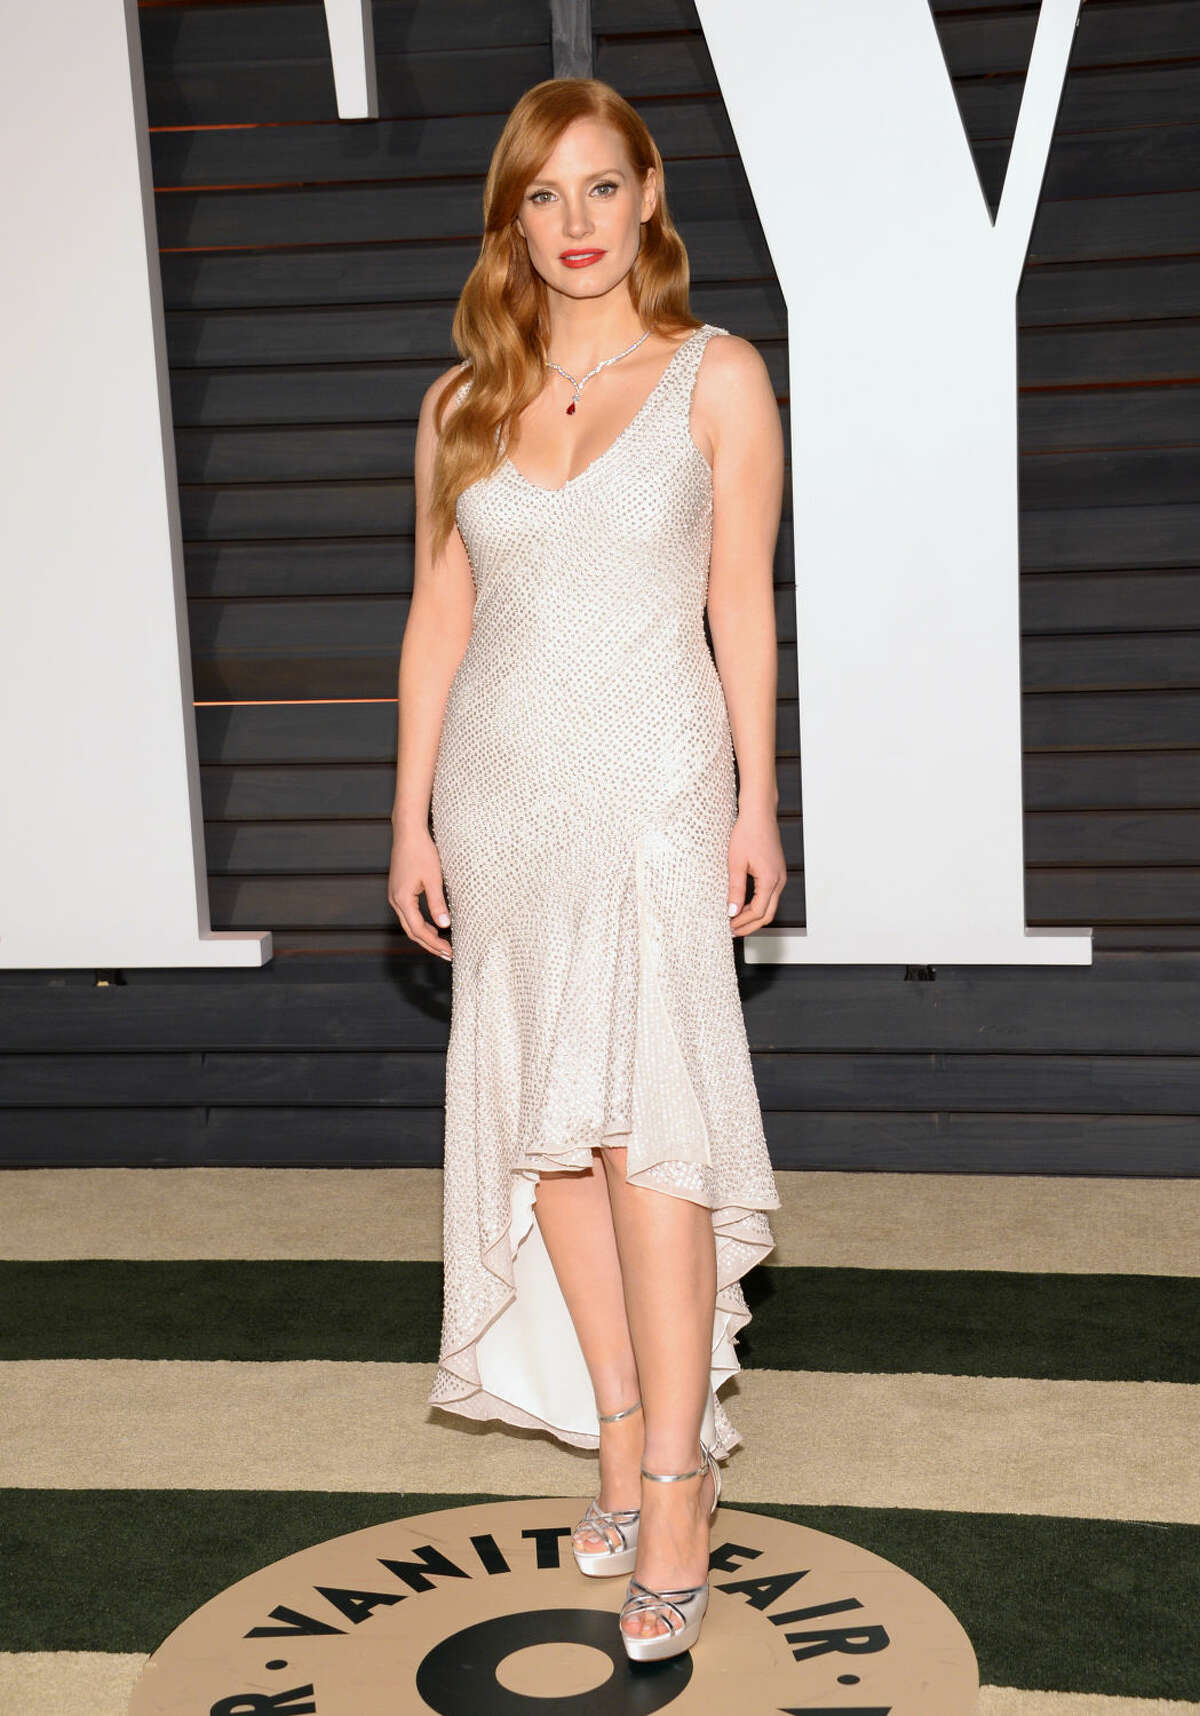 Jessica Chastain arrives at the 2015 Vanity Fair Oscar Party on Sunday, Feb. 22, 2015, in Beverly Hills, Calif. (Photo by Evan Agostini/Invision/AP)